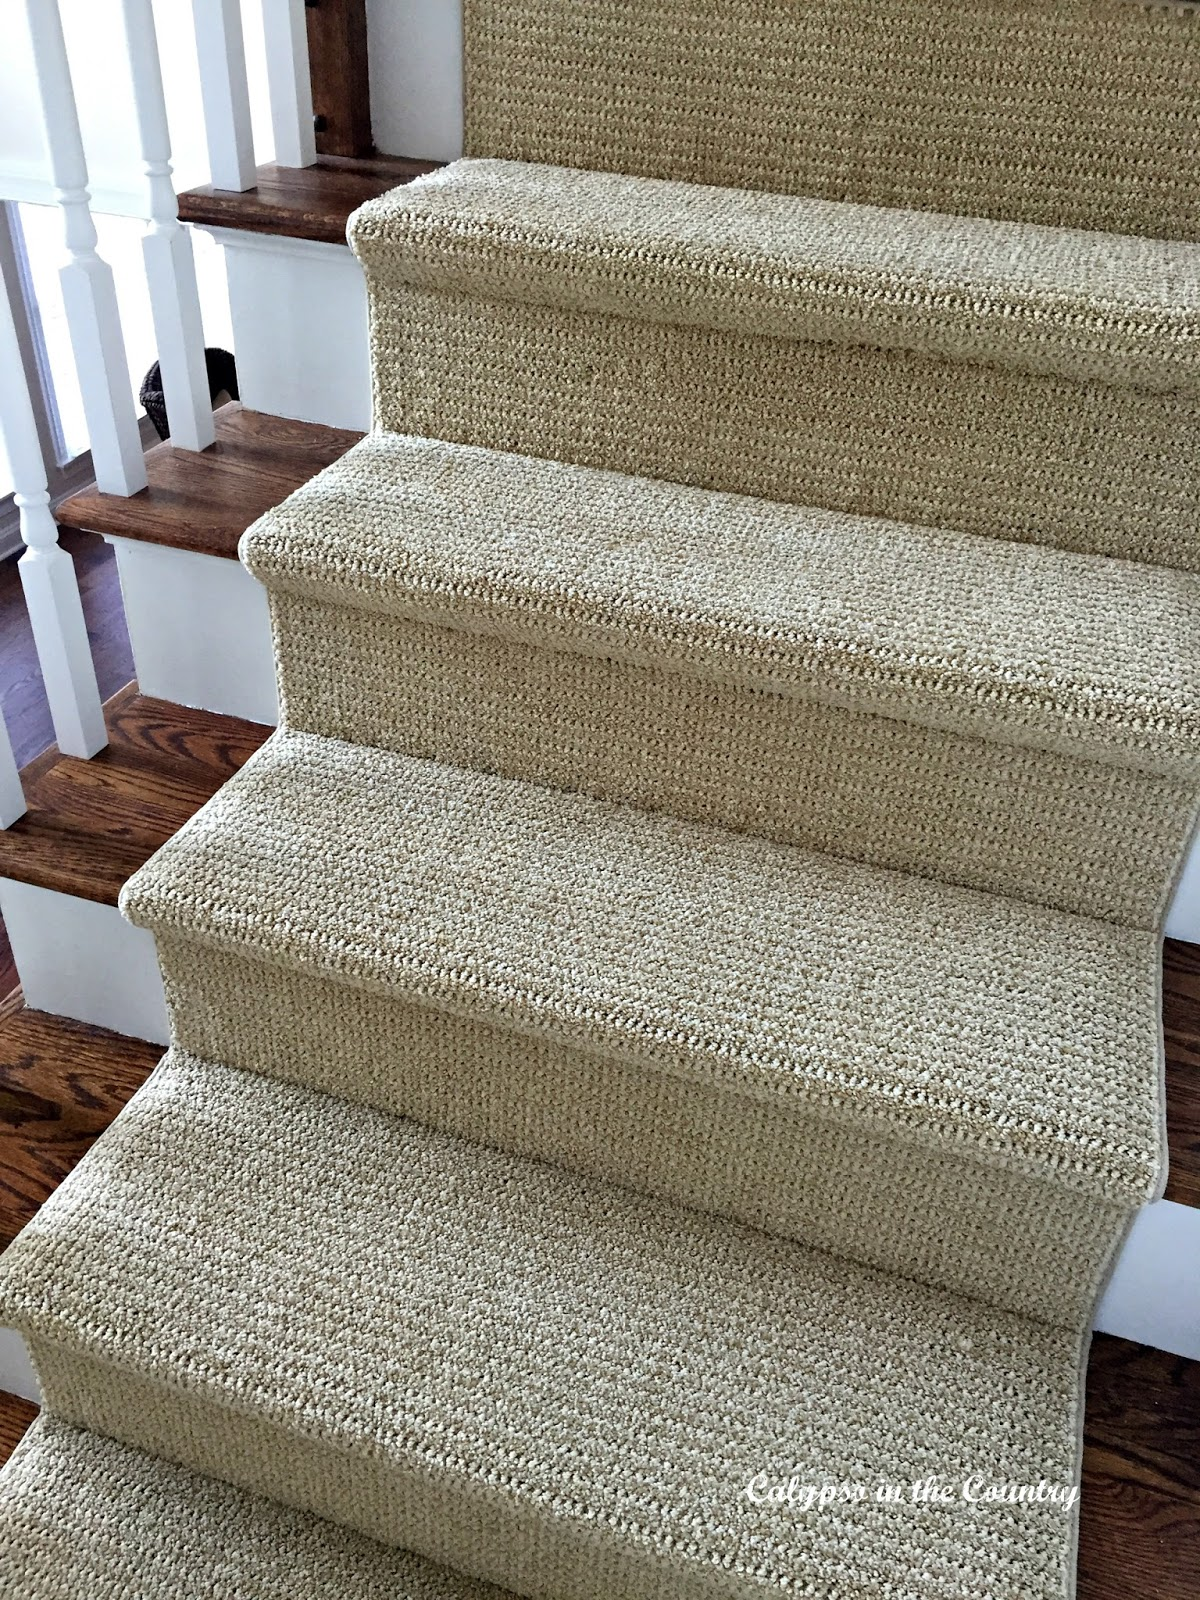 A Sisal Substitute For The Stairs Calypso In The Country